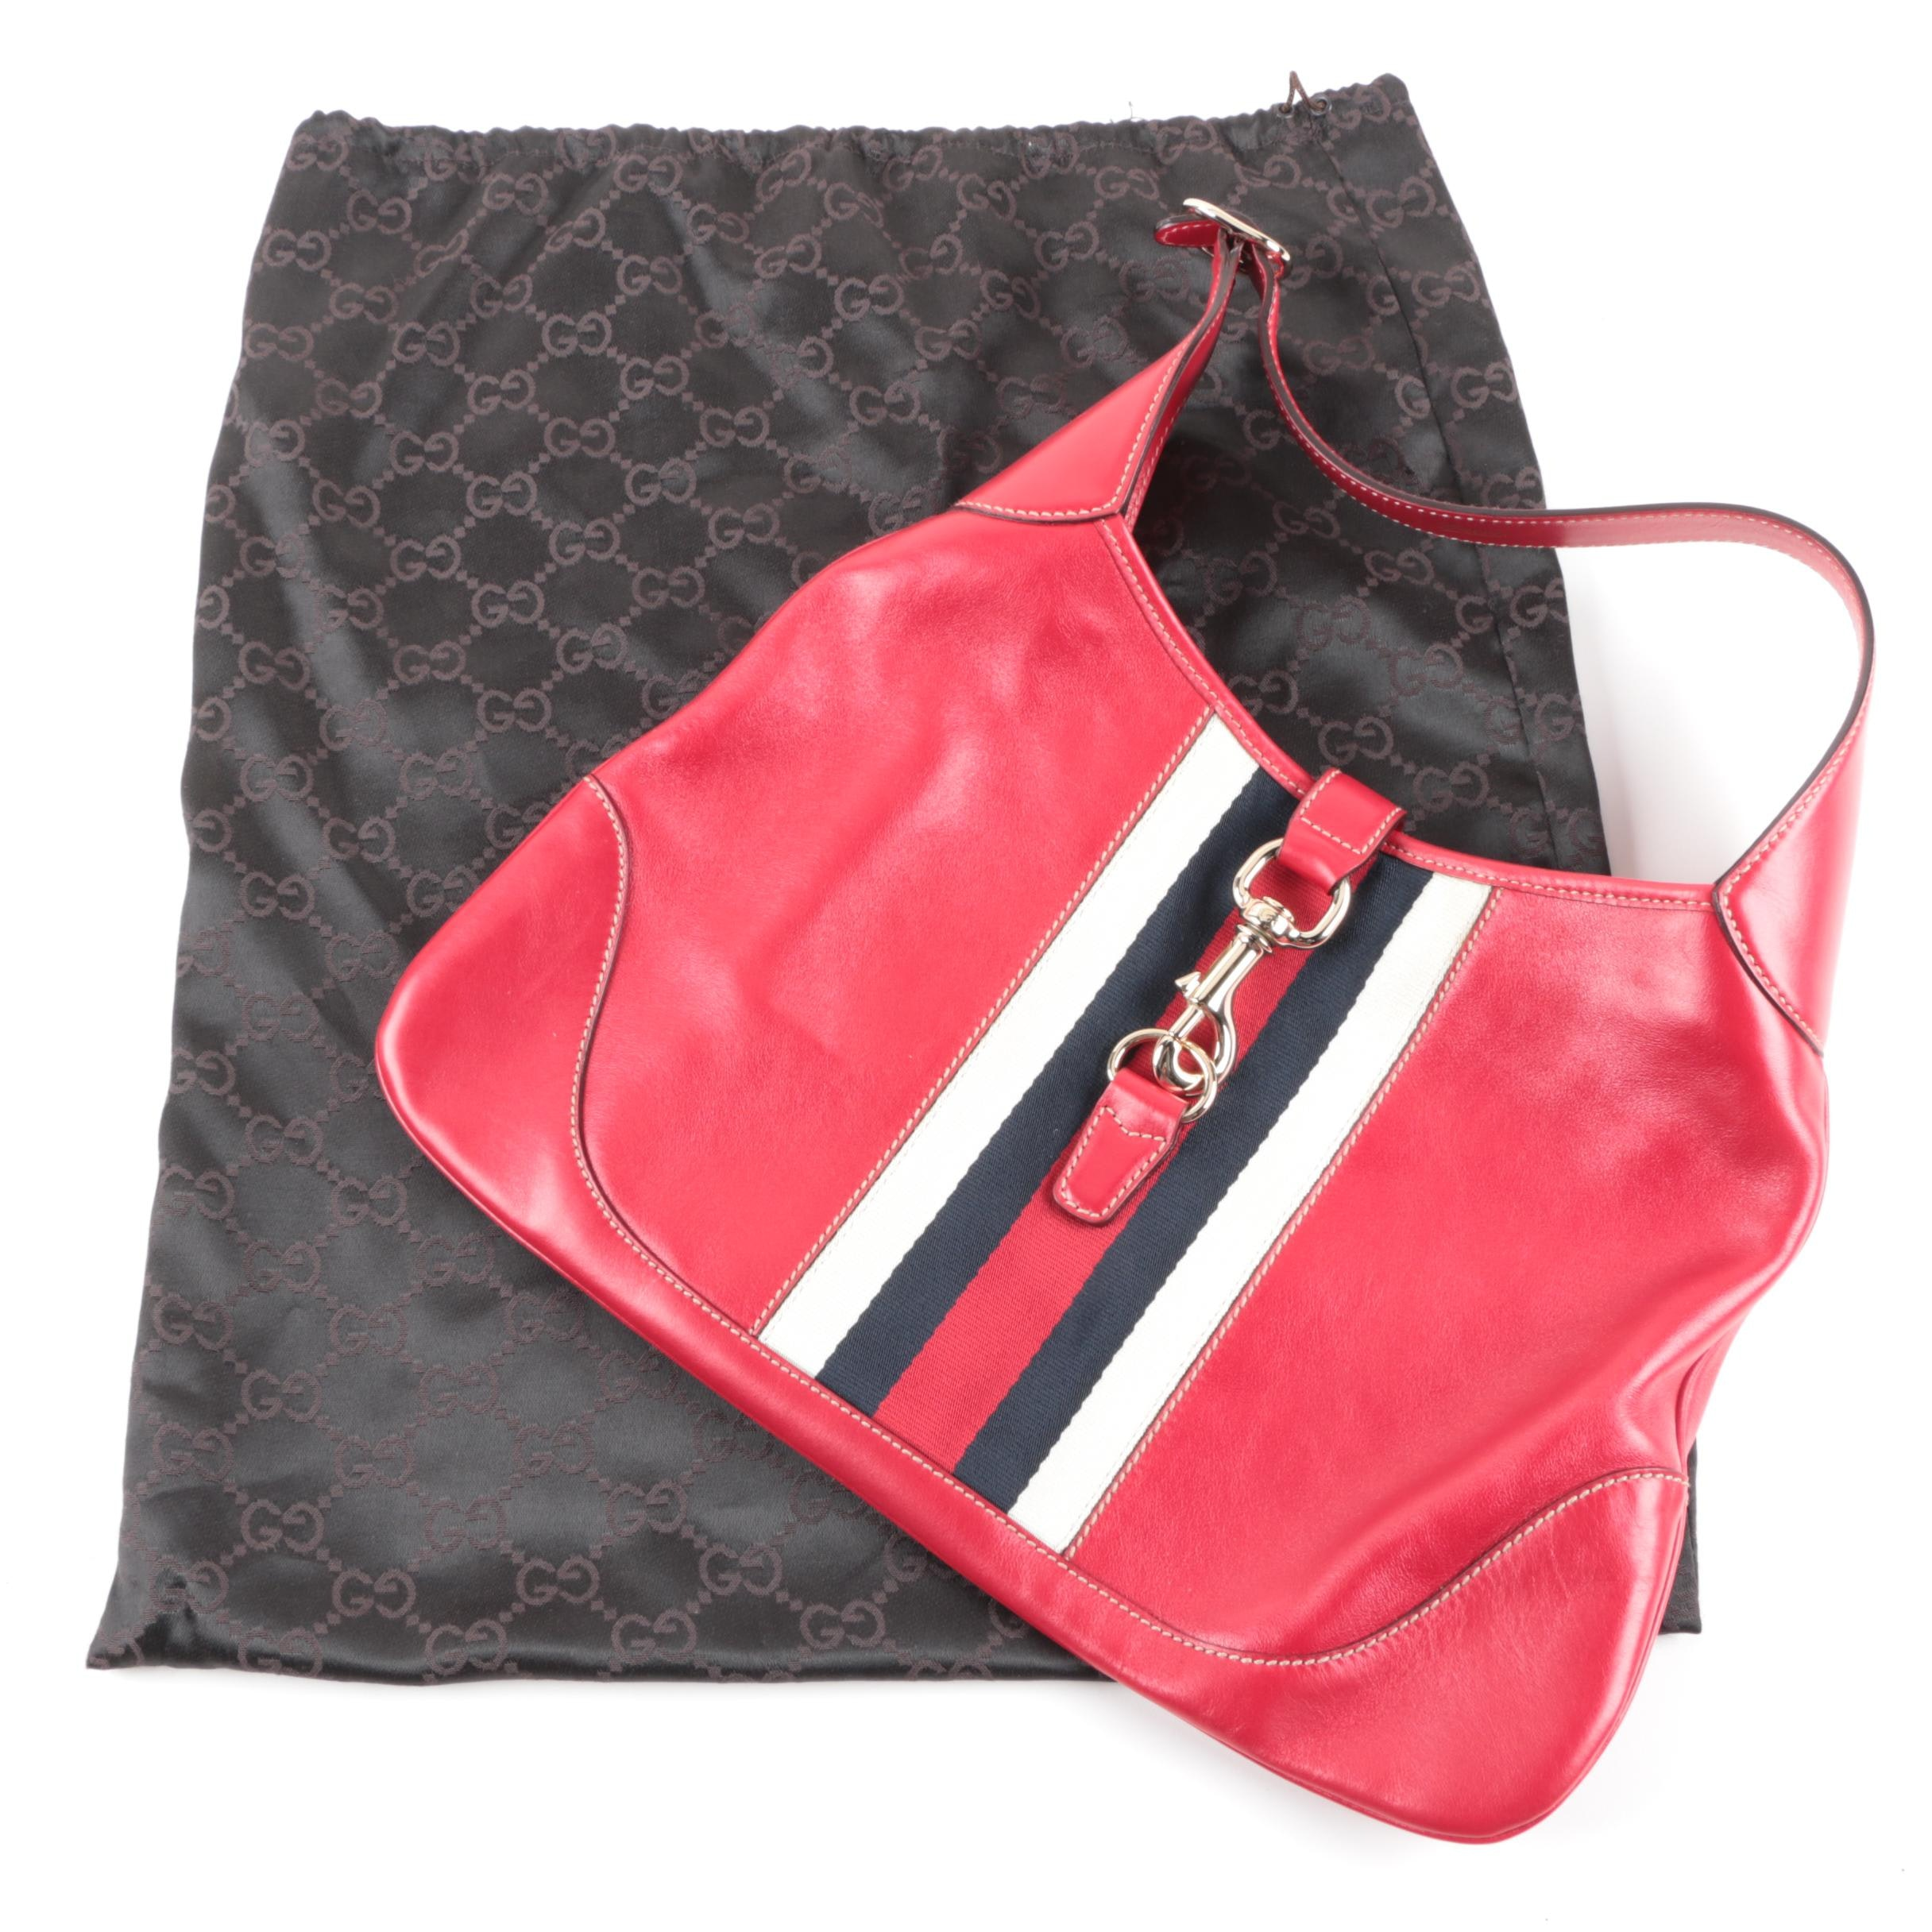 Gucci Red Leather Handbag